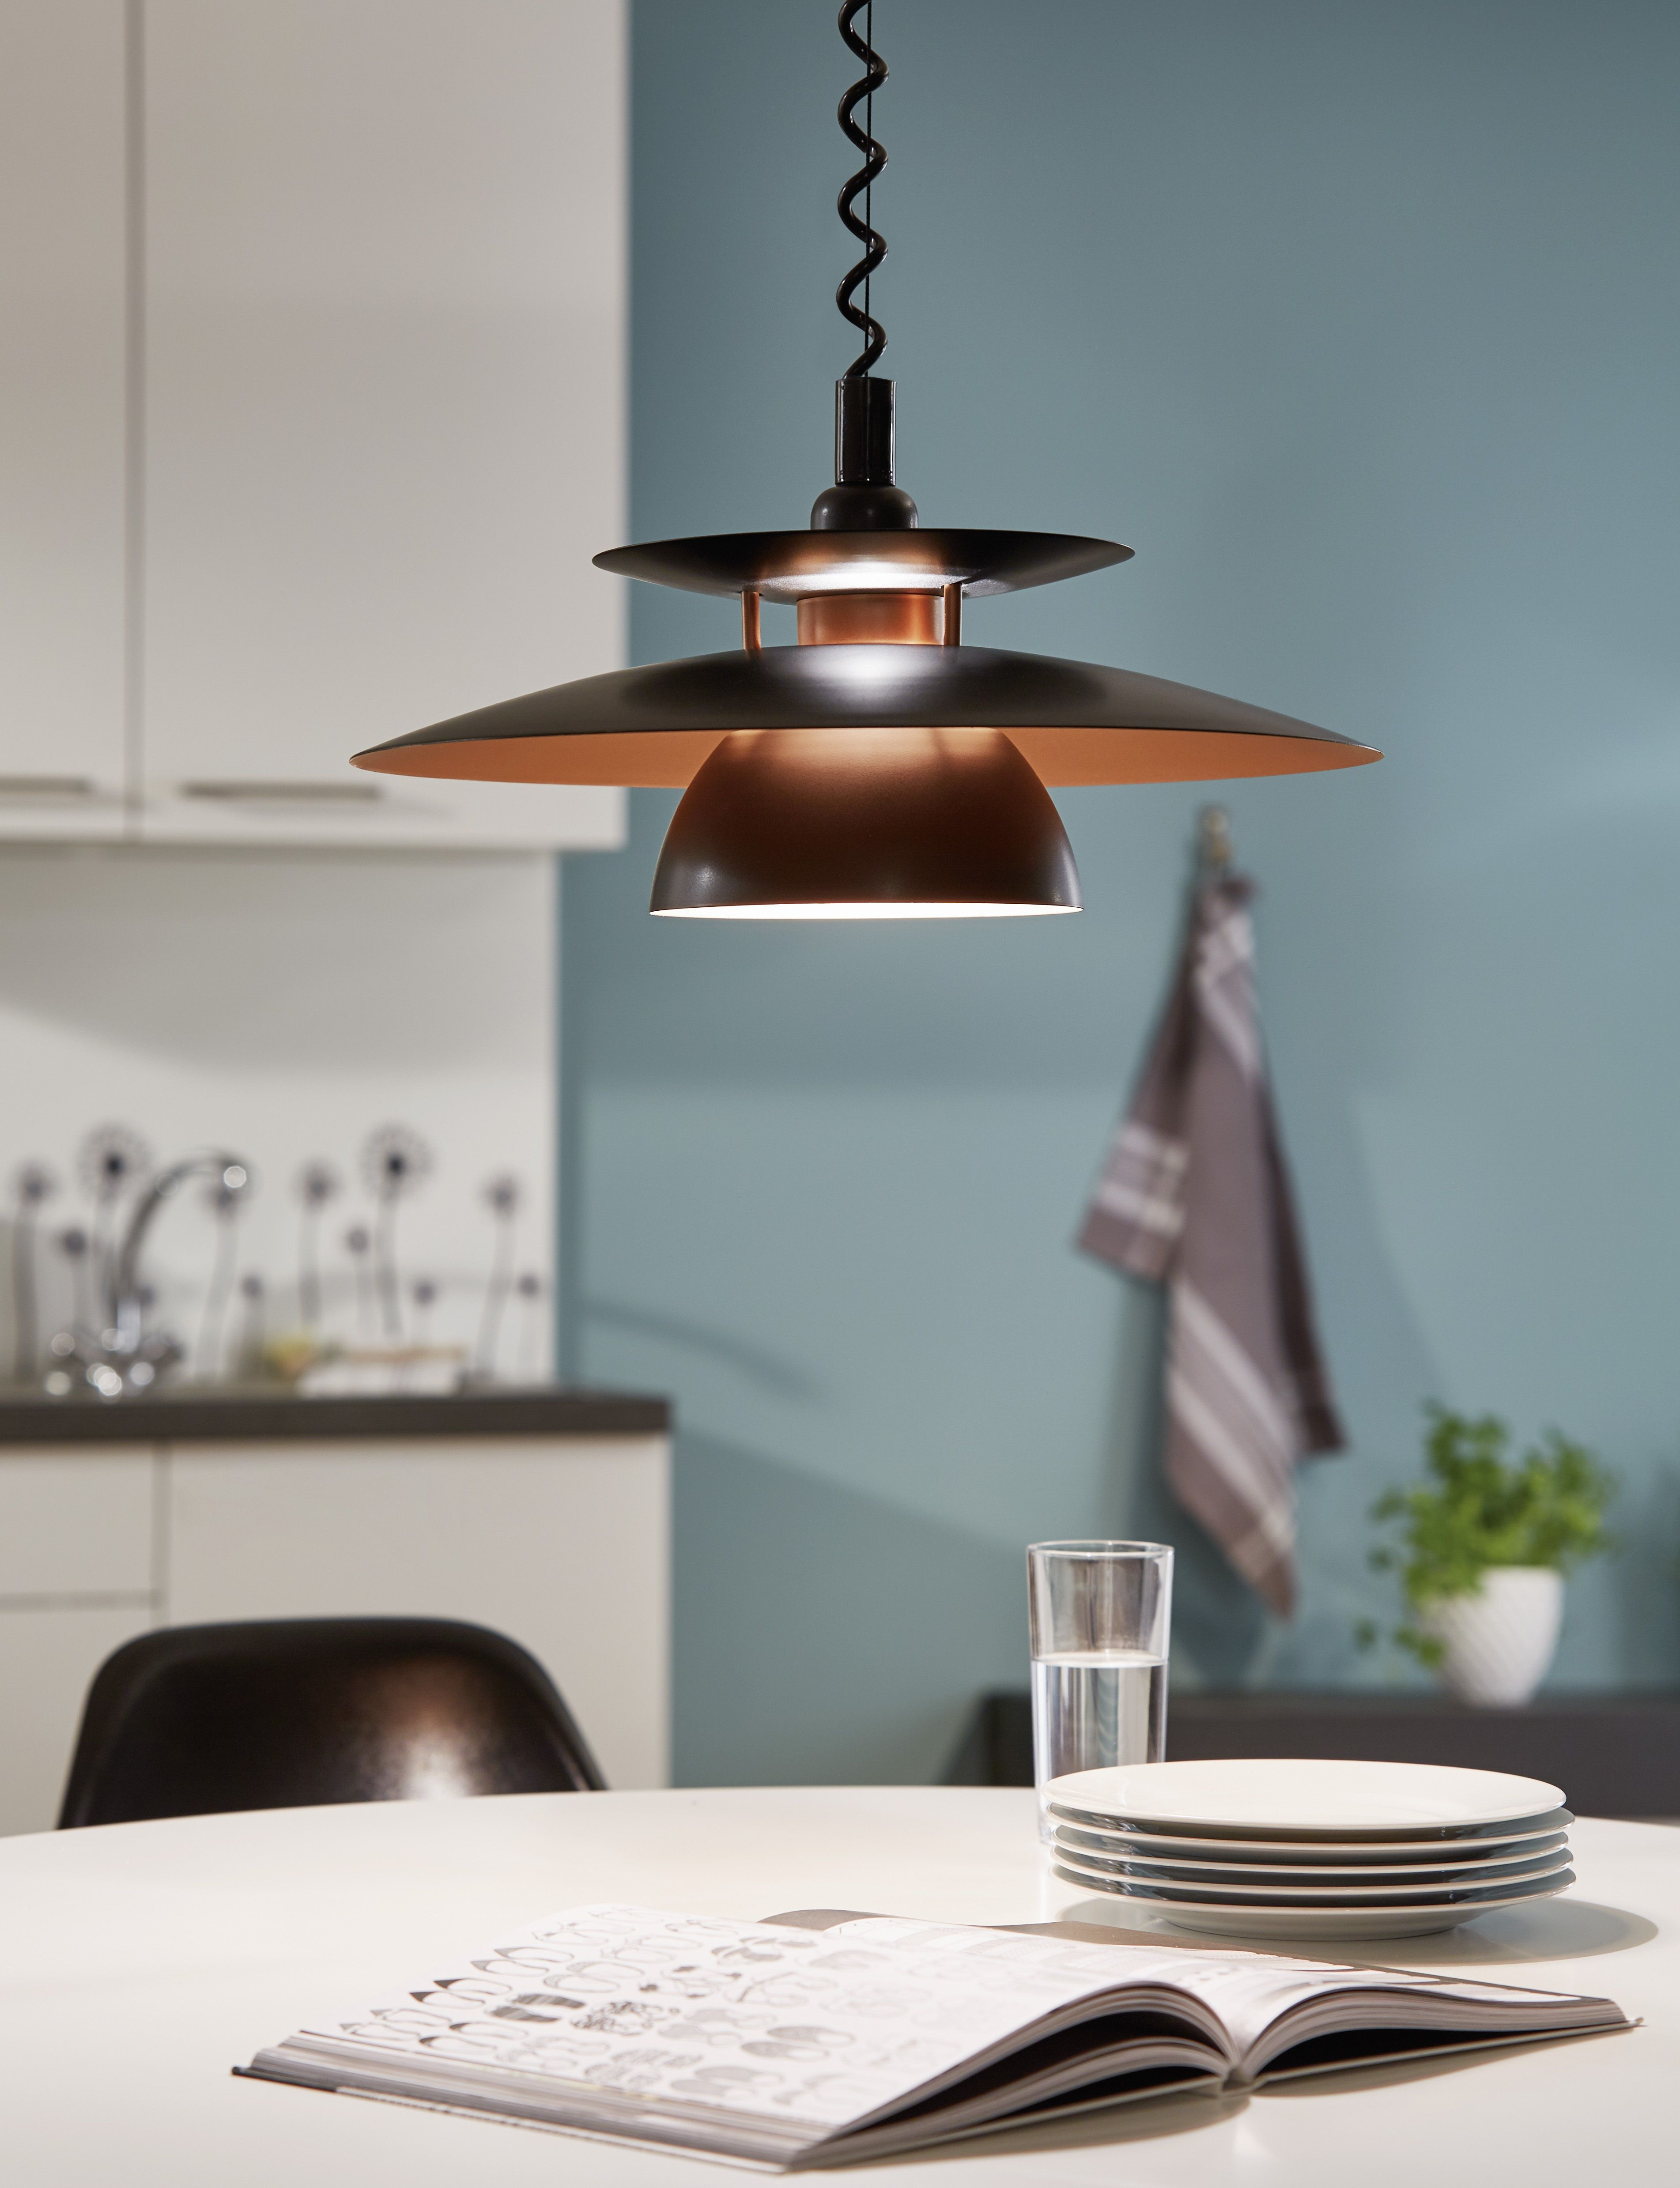 The Brenda pendant by Eglo Lighting features a layered metal shade ...